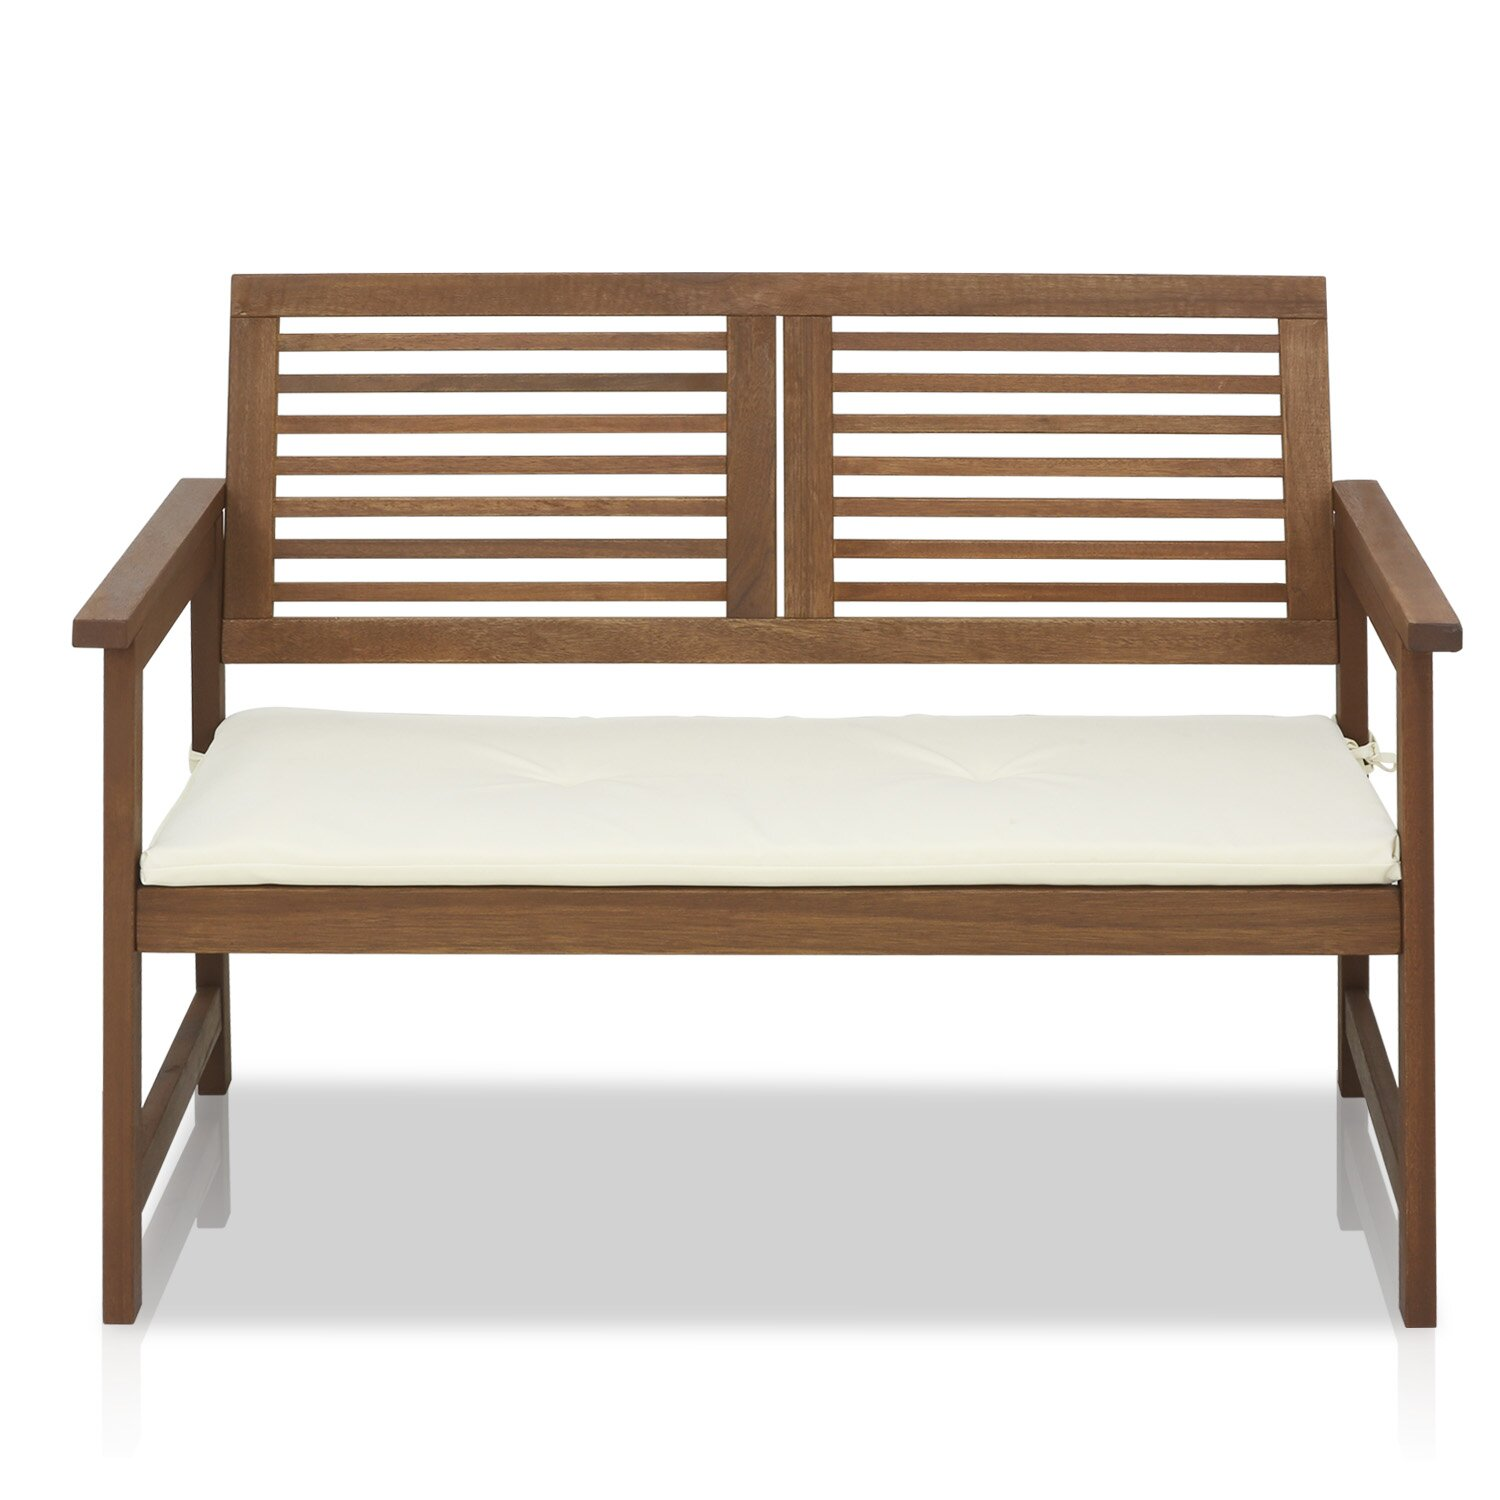 Furinno Tioman Teak Garden Bench with Cushion & Reviews